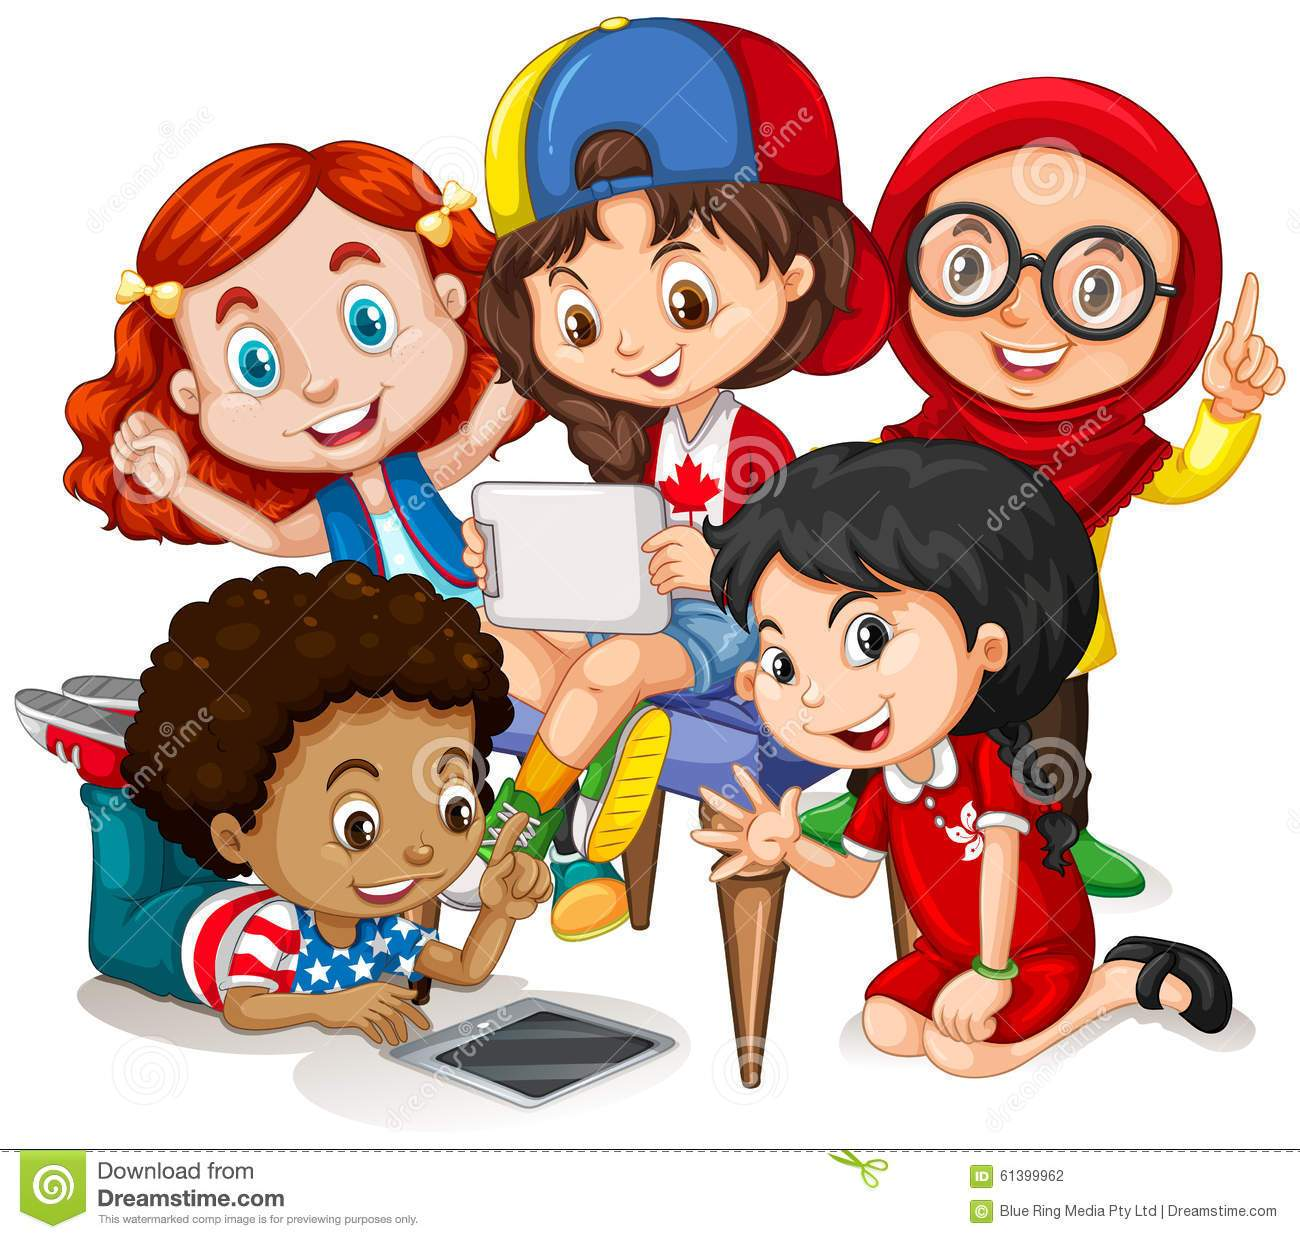 Children working together clipart 3 » Clipart Portal.